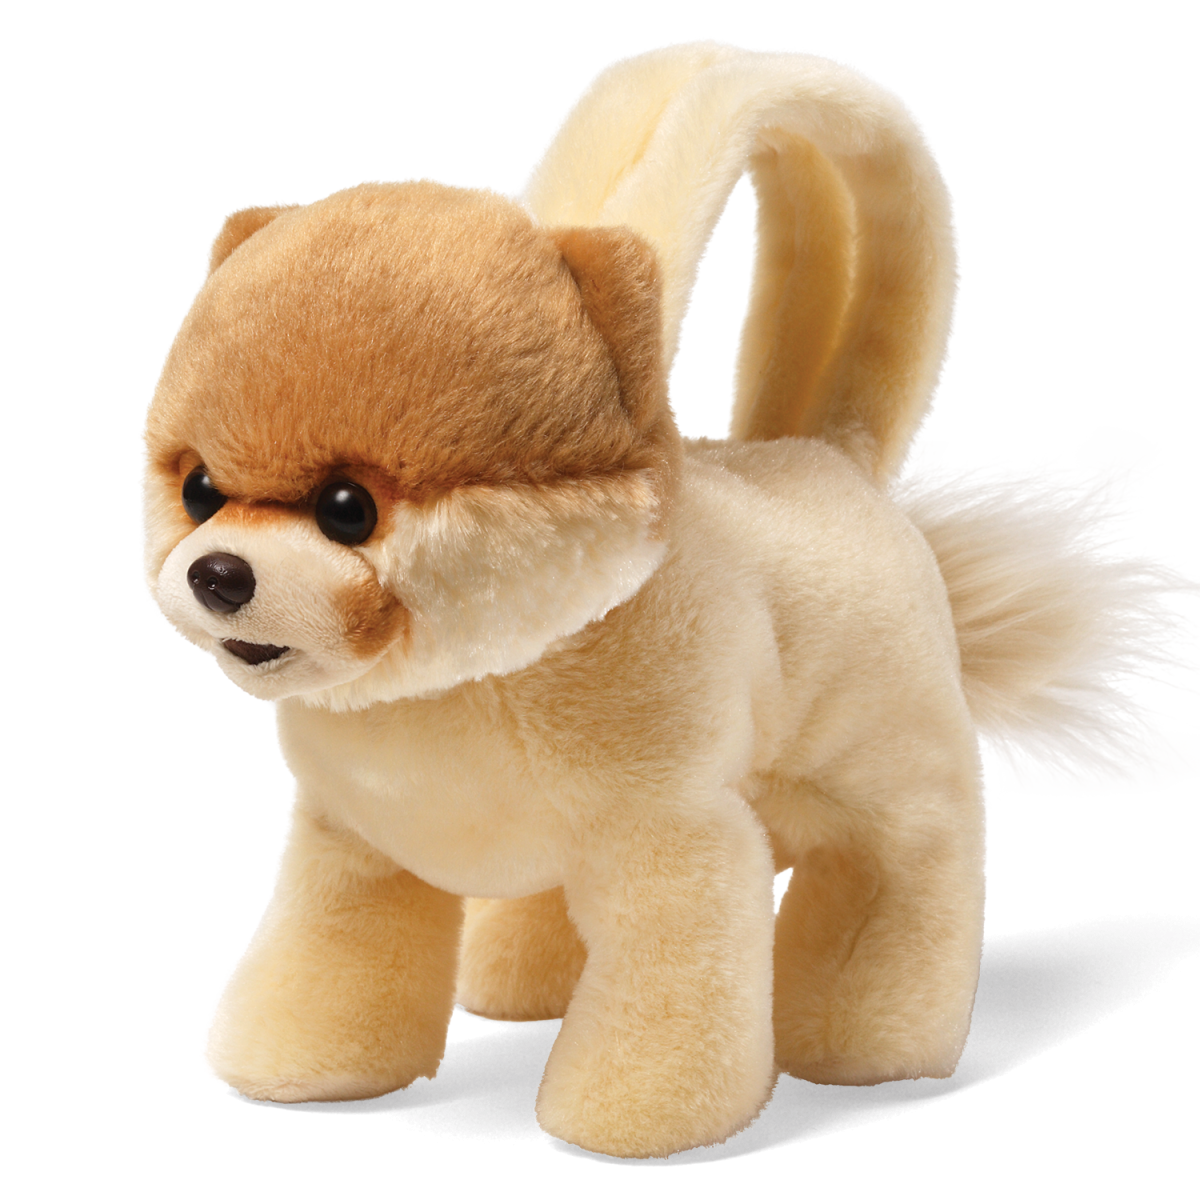 Boo Dog PNG HD - Dog HD PNG